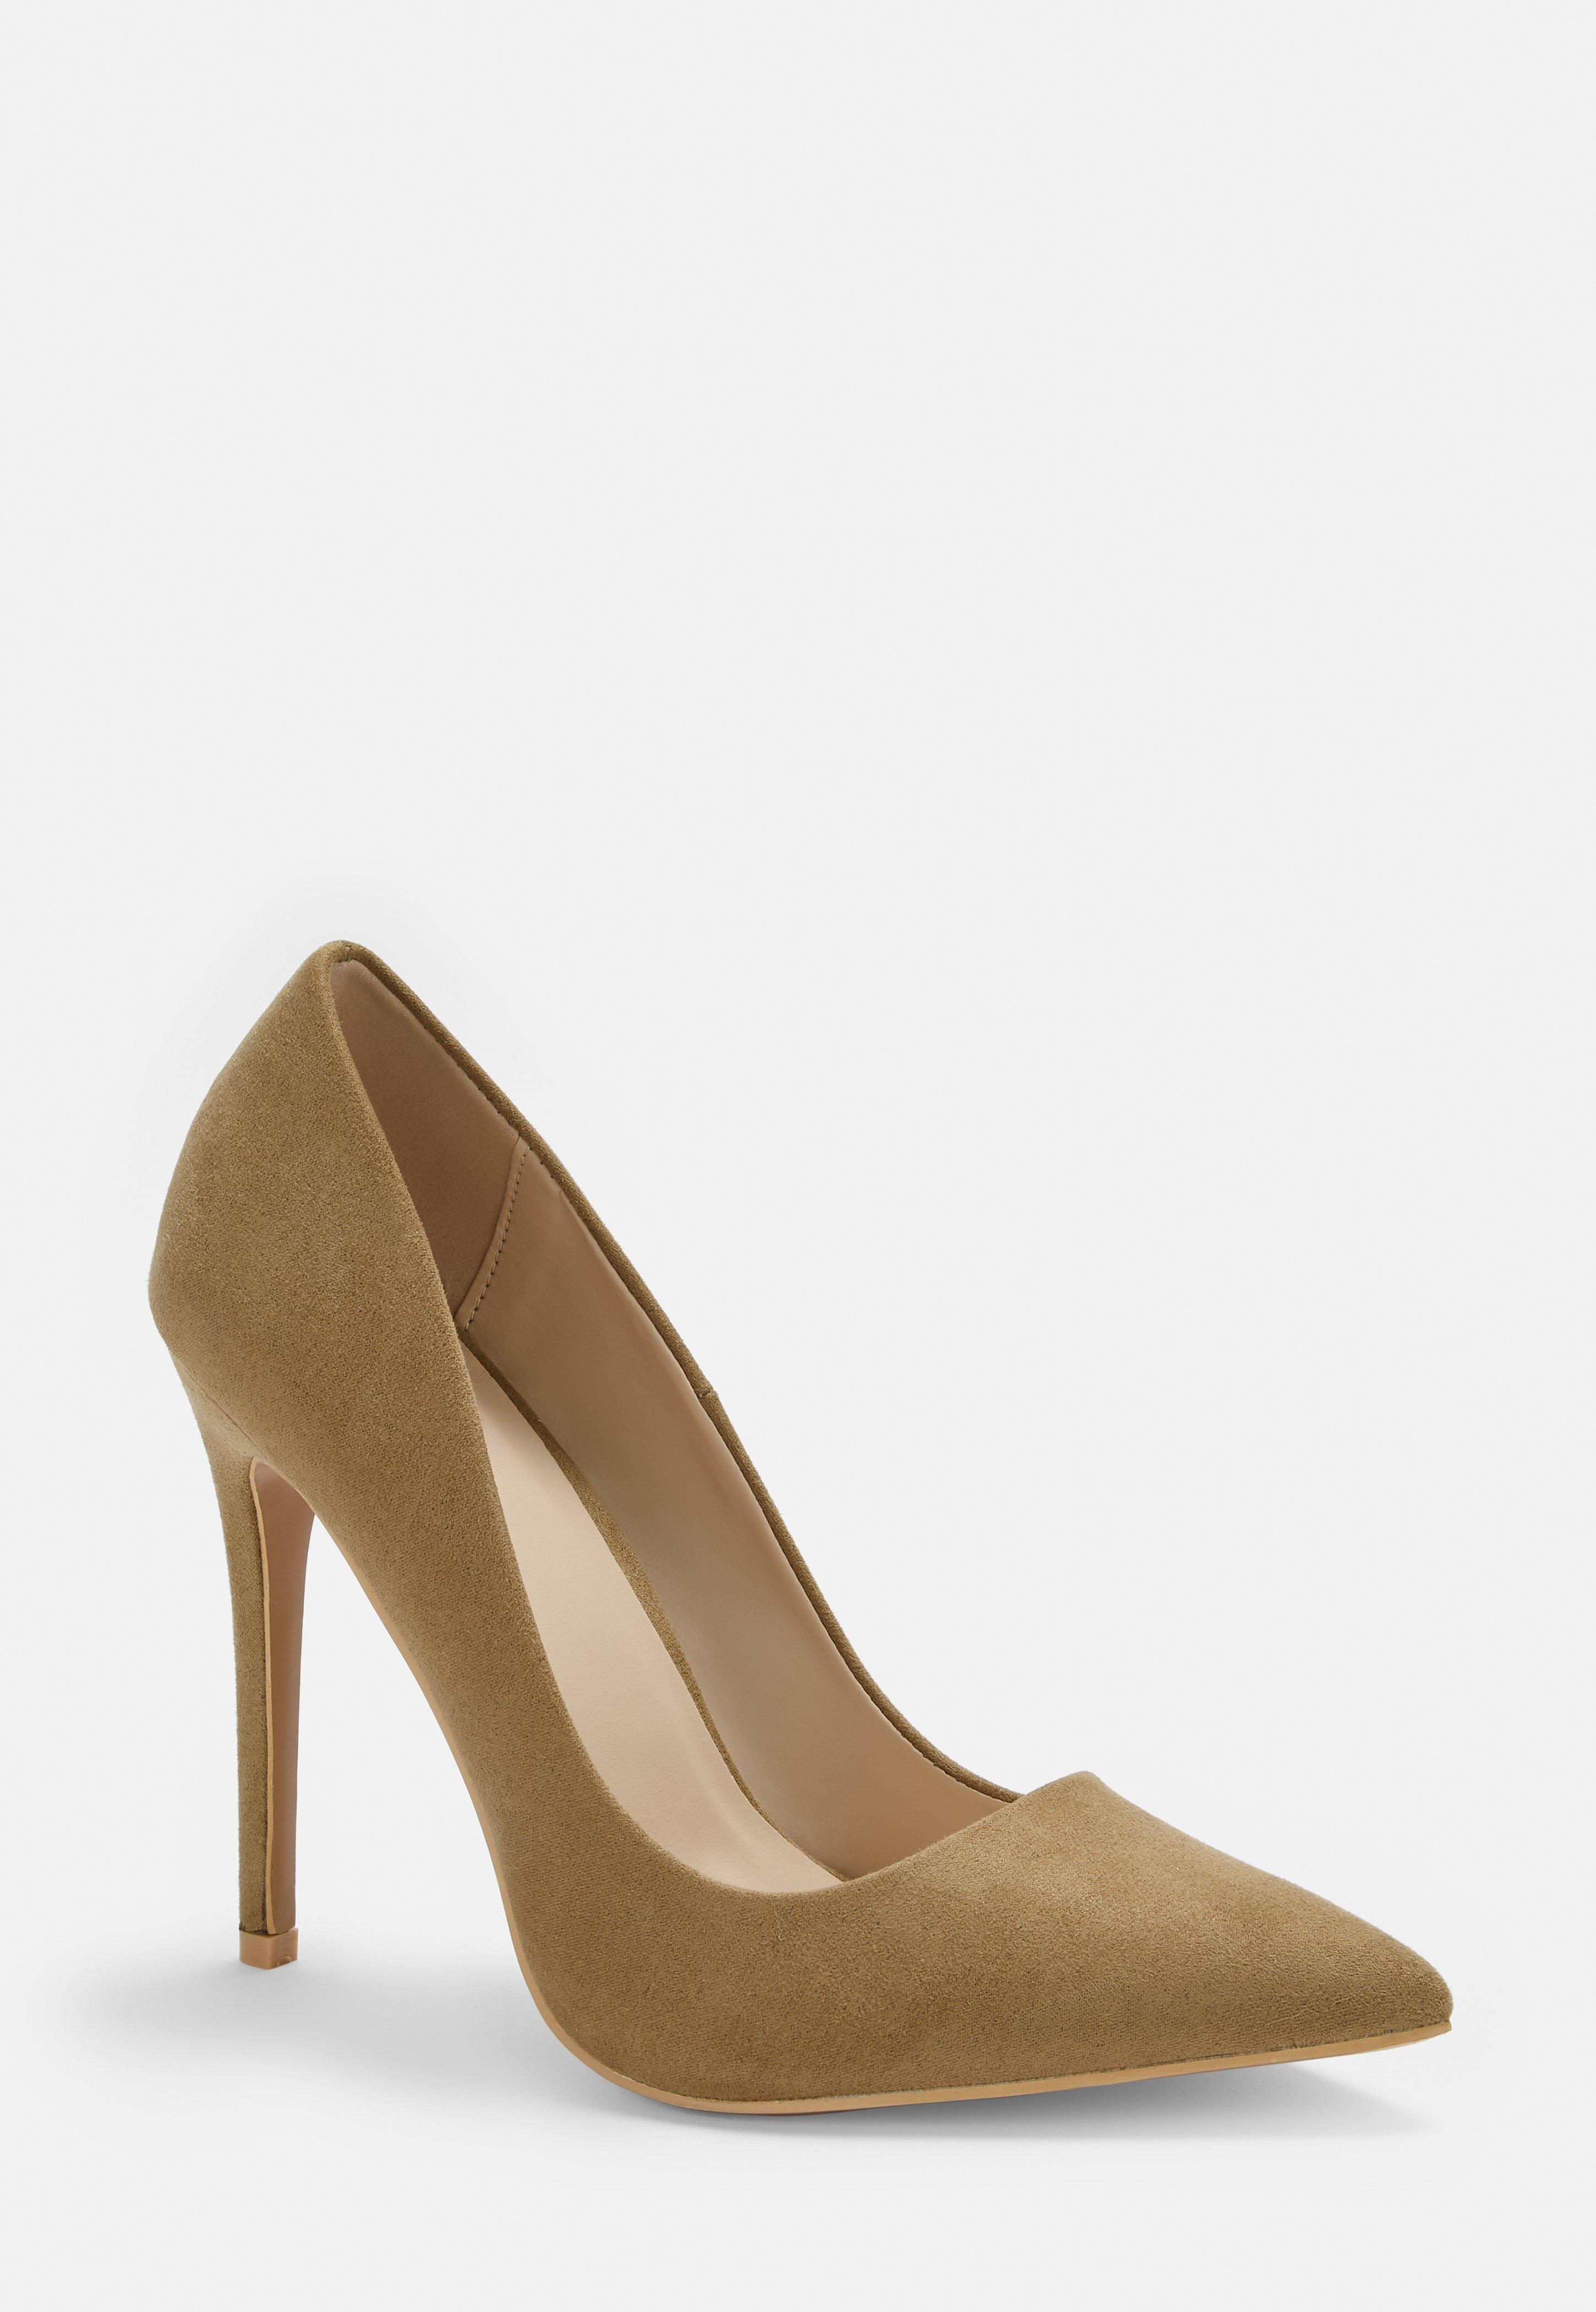 Nude Faux Suede Pumps by Missguided